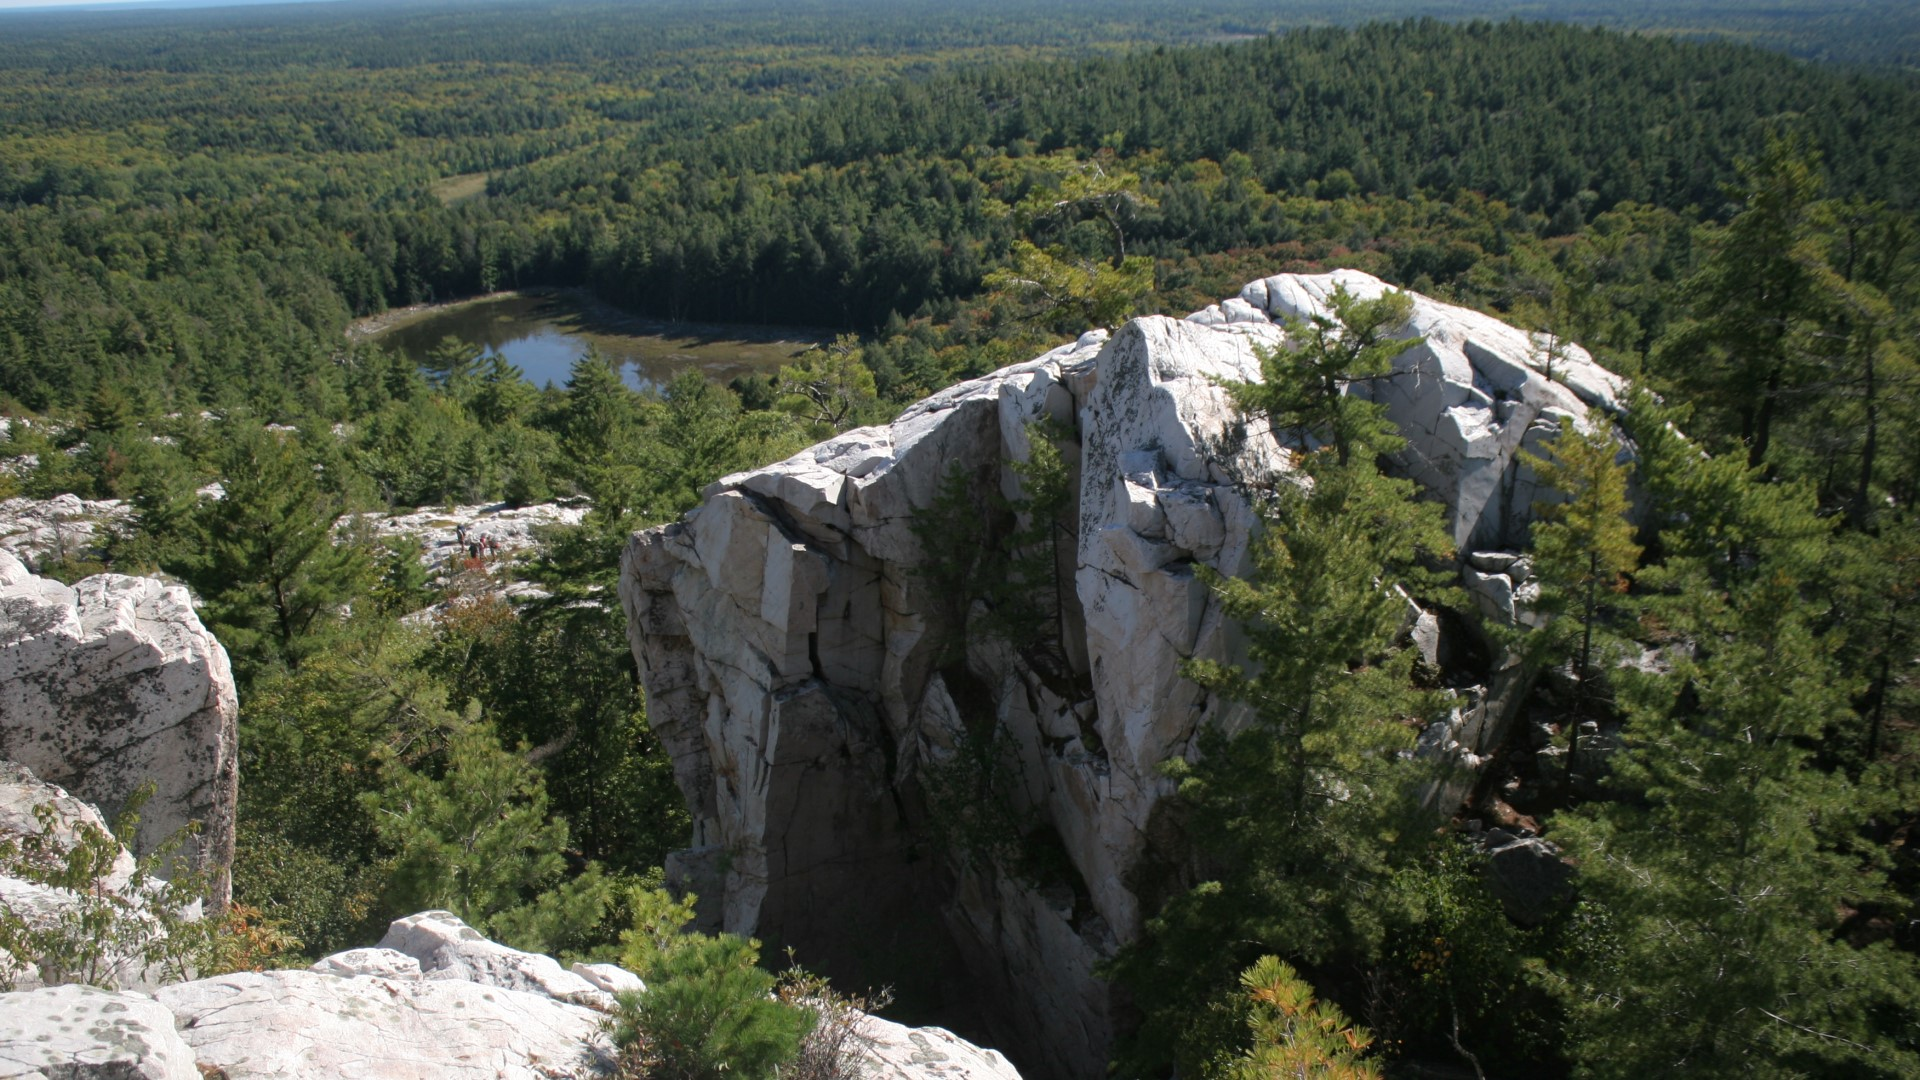 At the peak of The Crack in Killarney Provincial Park, Ontario.